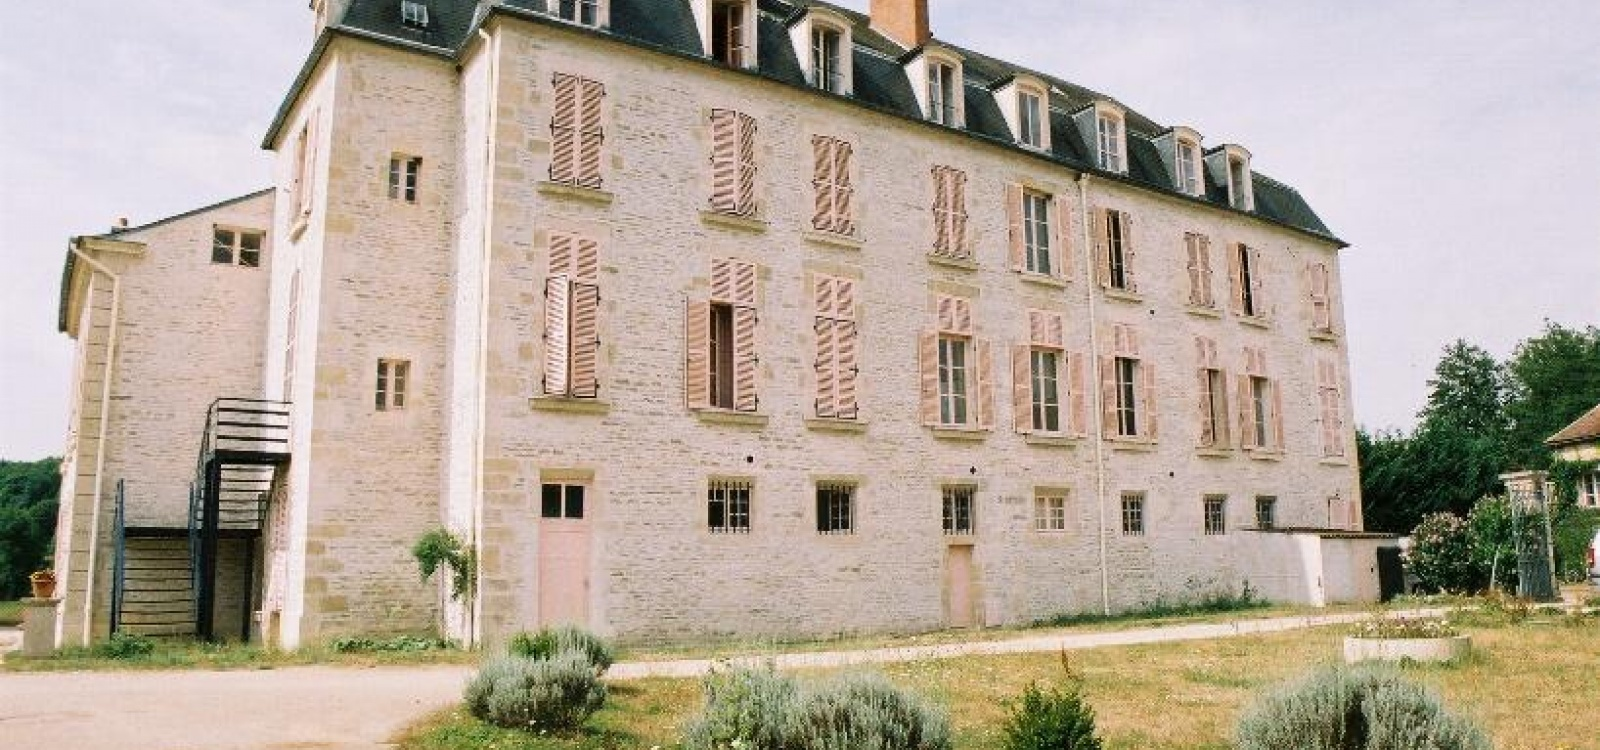 Avallon,Yonne,France,Château,1035